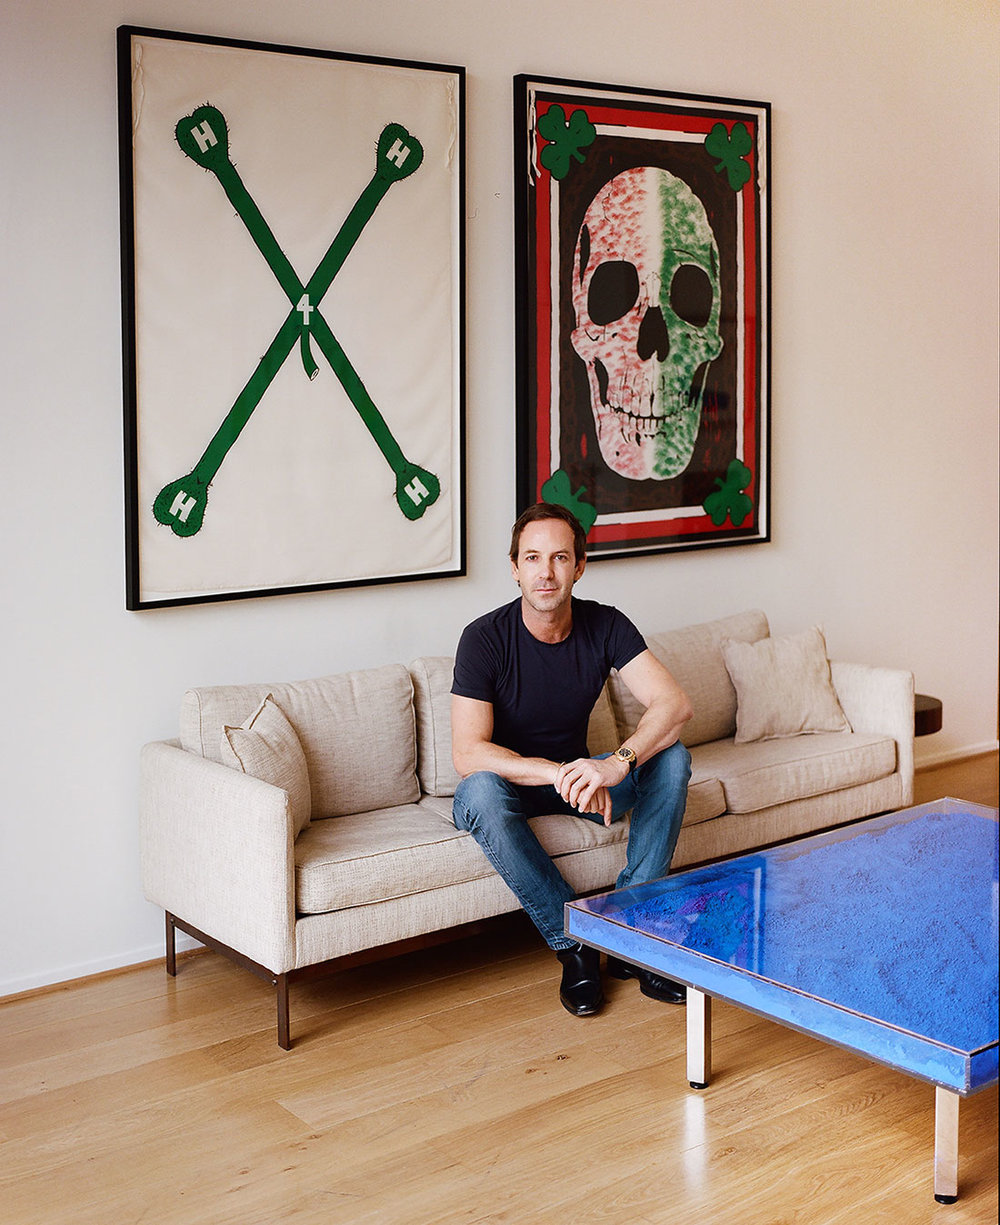 Charles Riva at home in Brussels. On the wall: Mike Kelley \ Heavy-Hangin'-Horny, Emerald Eyehole, 1989. In front: Yves Klein \ Table Bleu Klein, 1961/1963. © Eva Donckers for Collecteurs